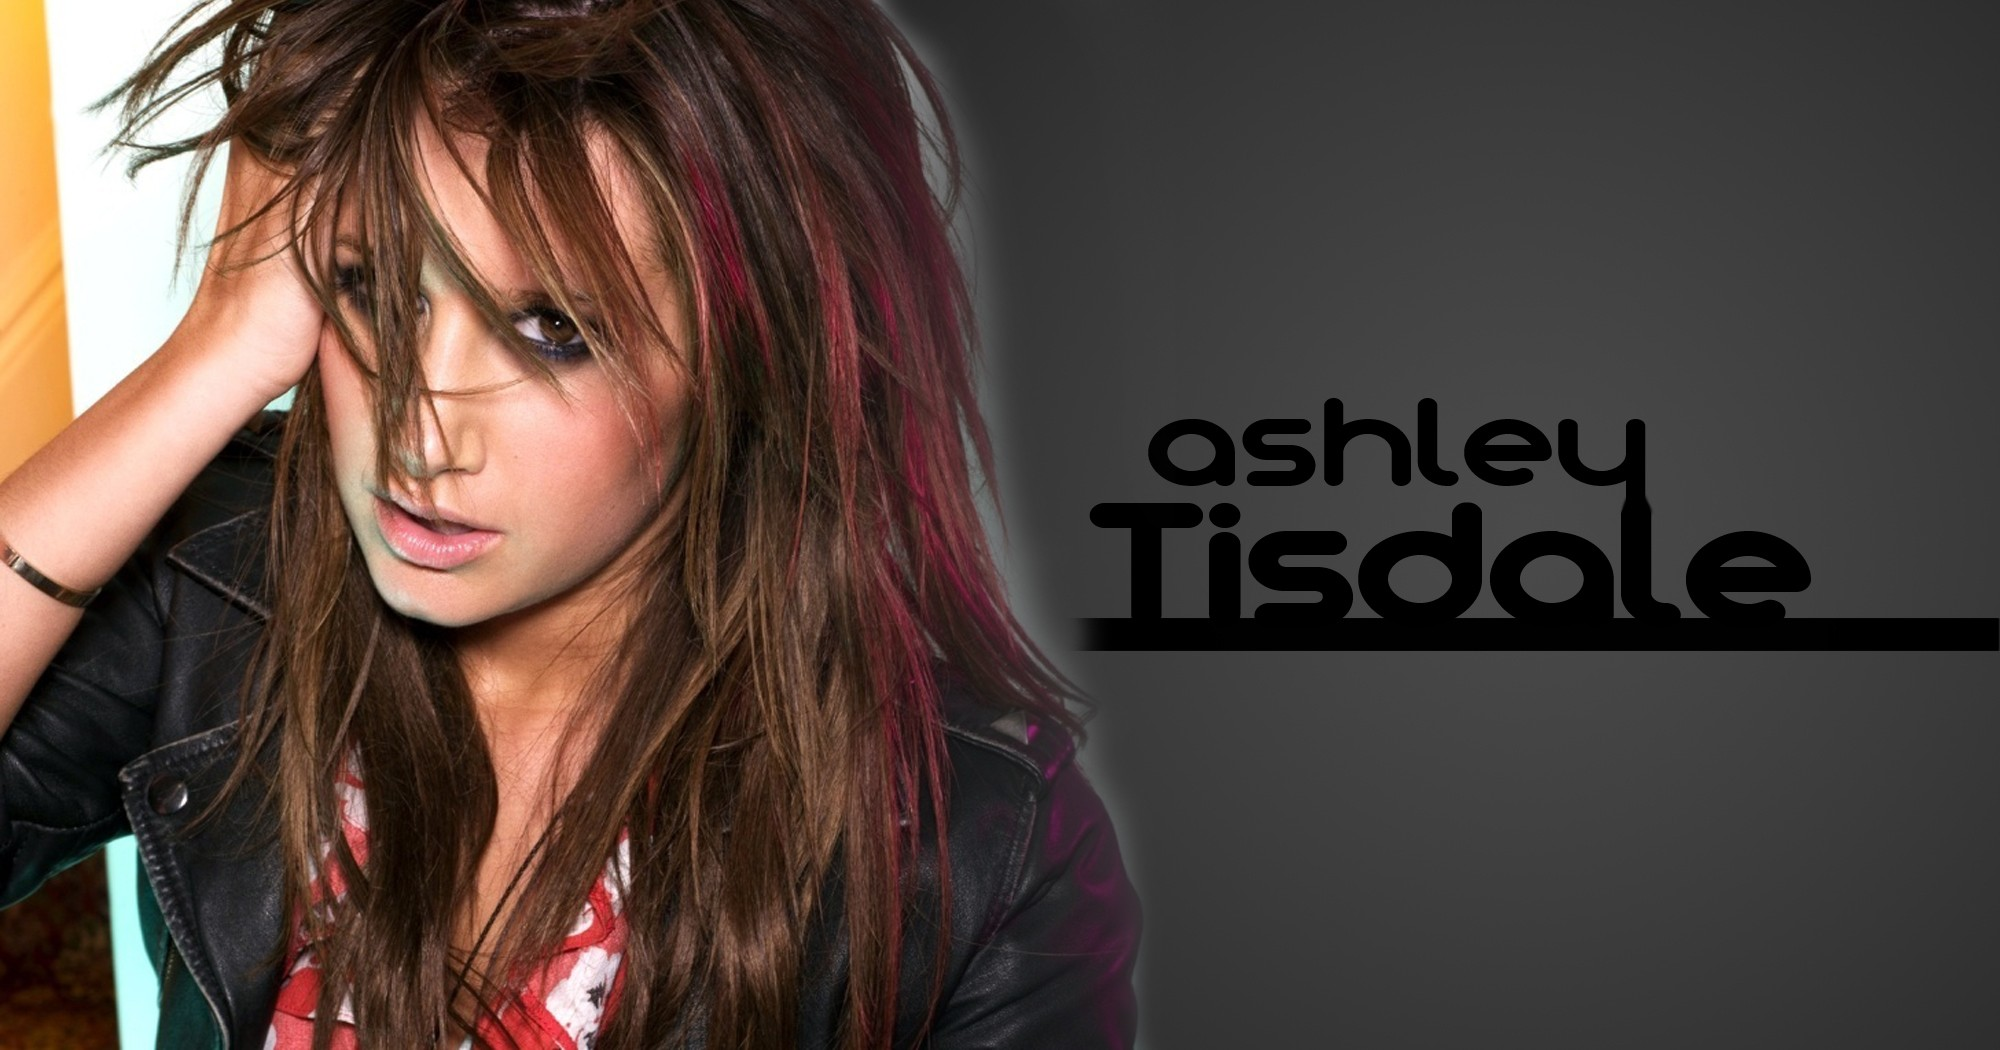 2000x1050 - Ashley Tisdale Wallpapers 2